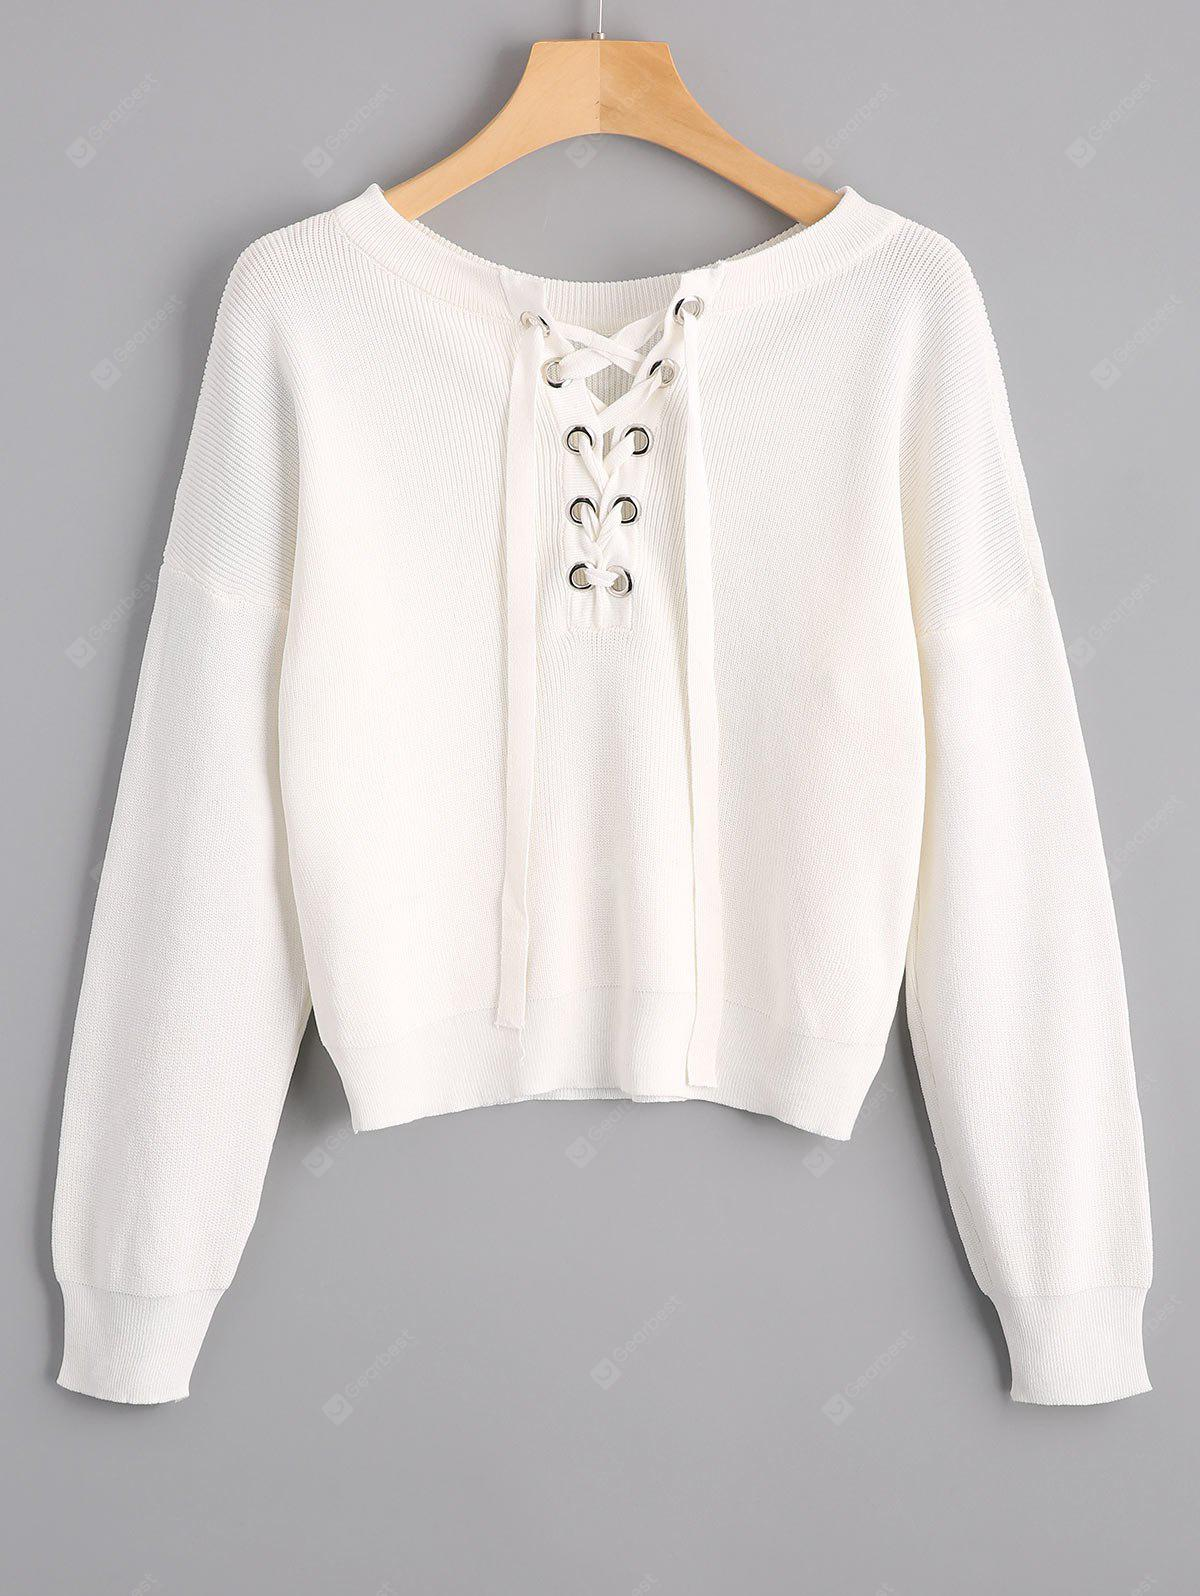 Round Collar Lace Up Knitted Top